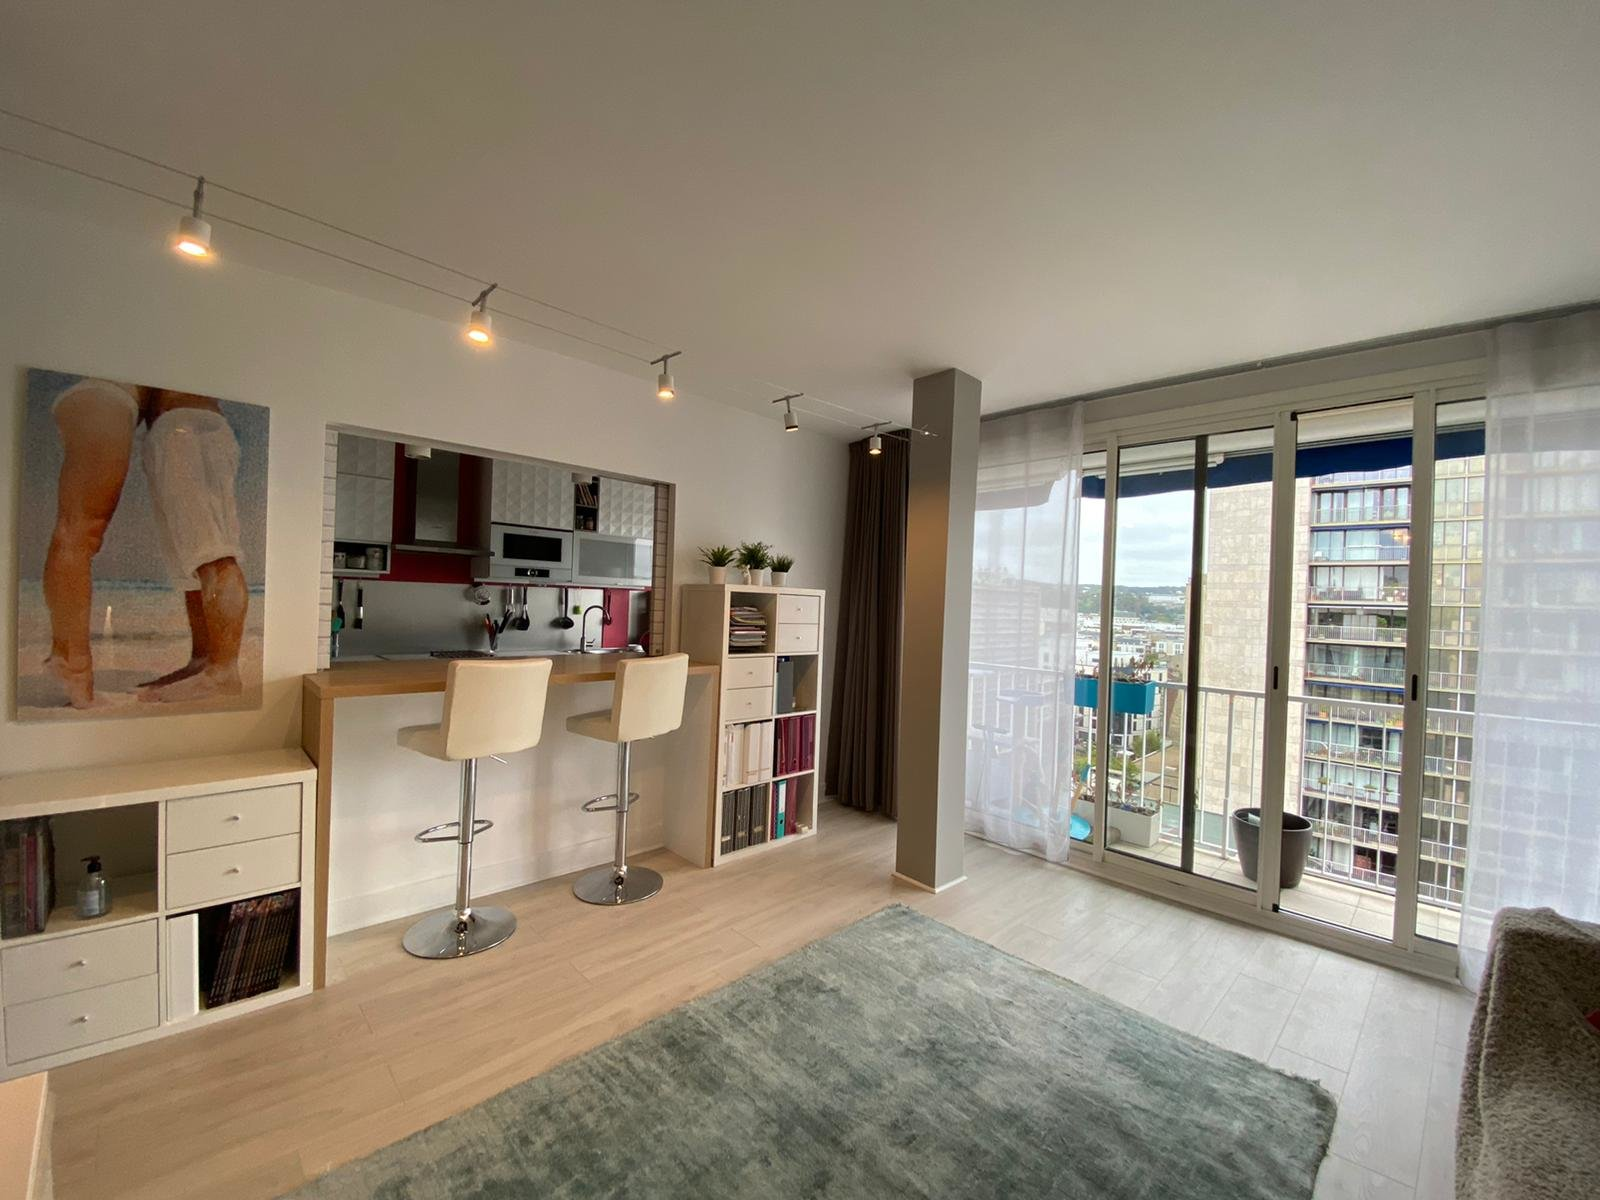 Sale Apartment - Boulogne-Billancourt République–Point-du-Jour